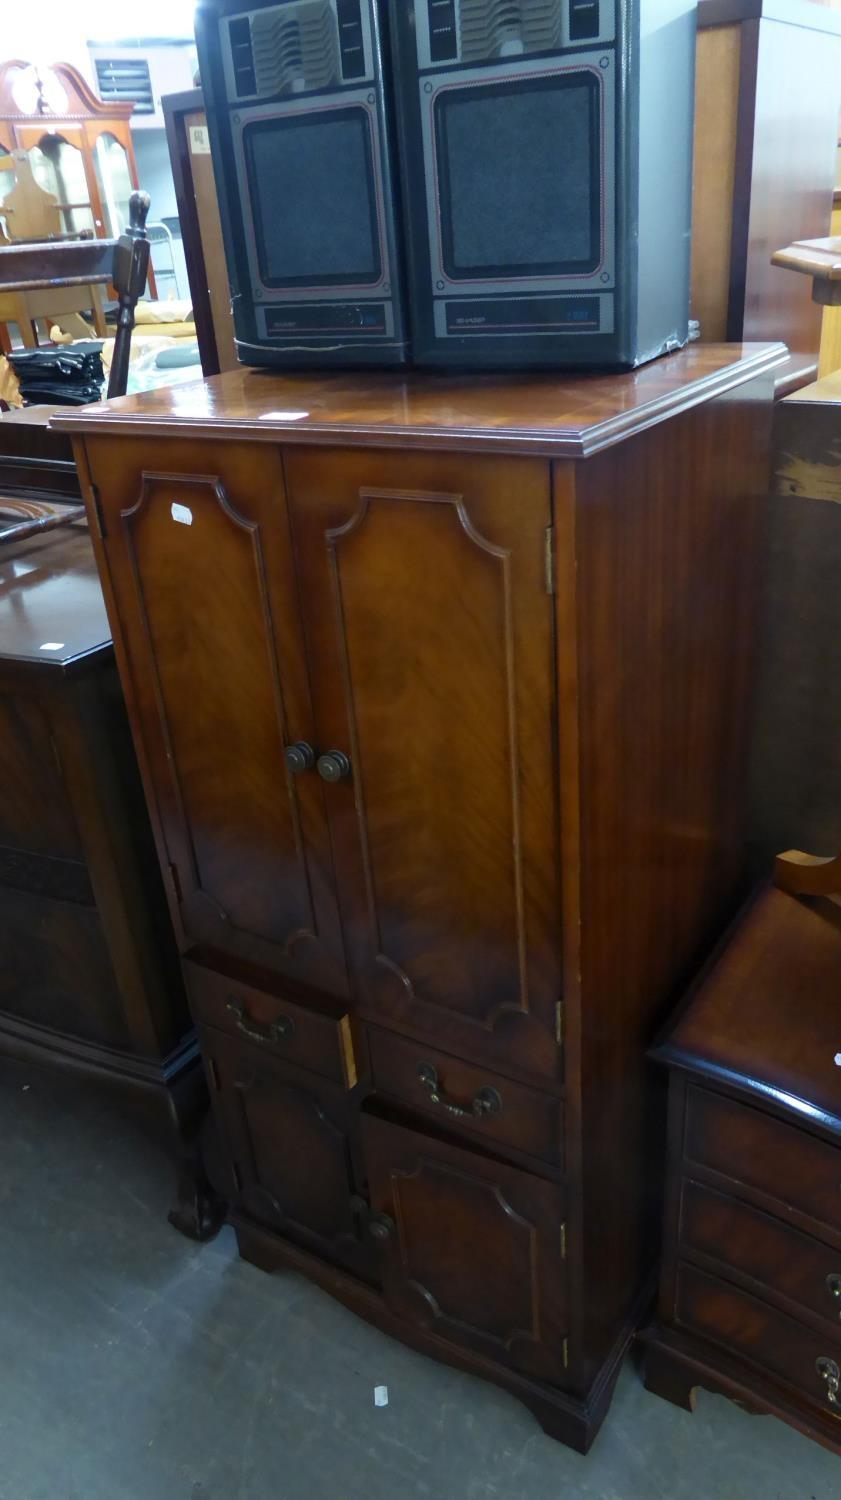 Lot 46 - GEORGIAN STYLE MAHOGANY TWO DOOR HI-FI CABINET WITH LIFT UP TOP, TWO DOORS OVER TWO DRAWERS AND